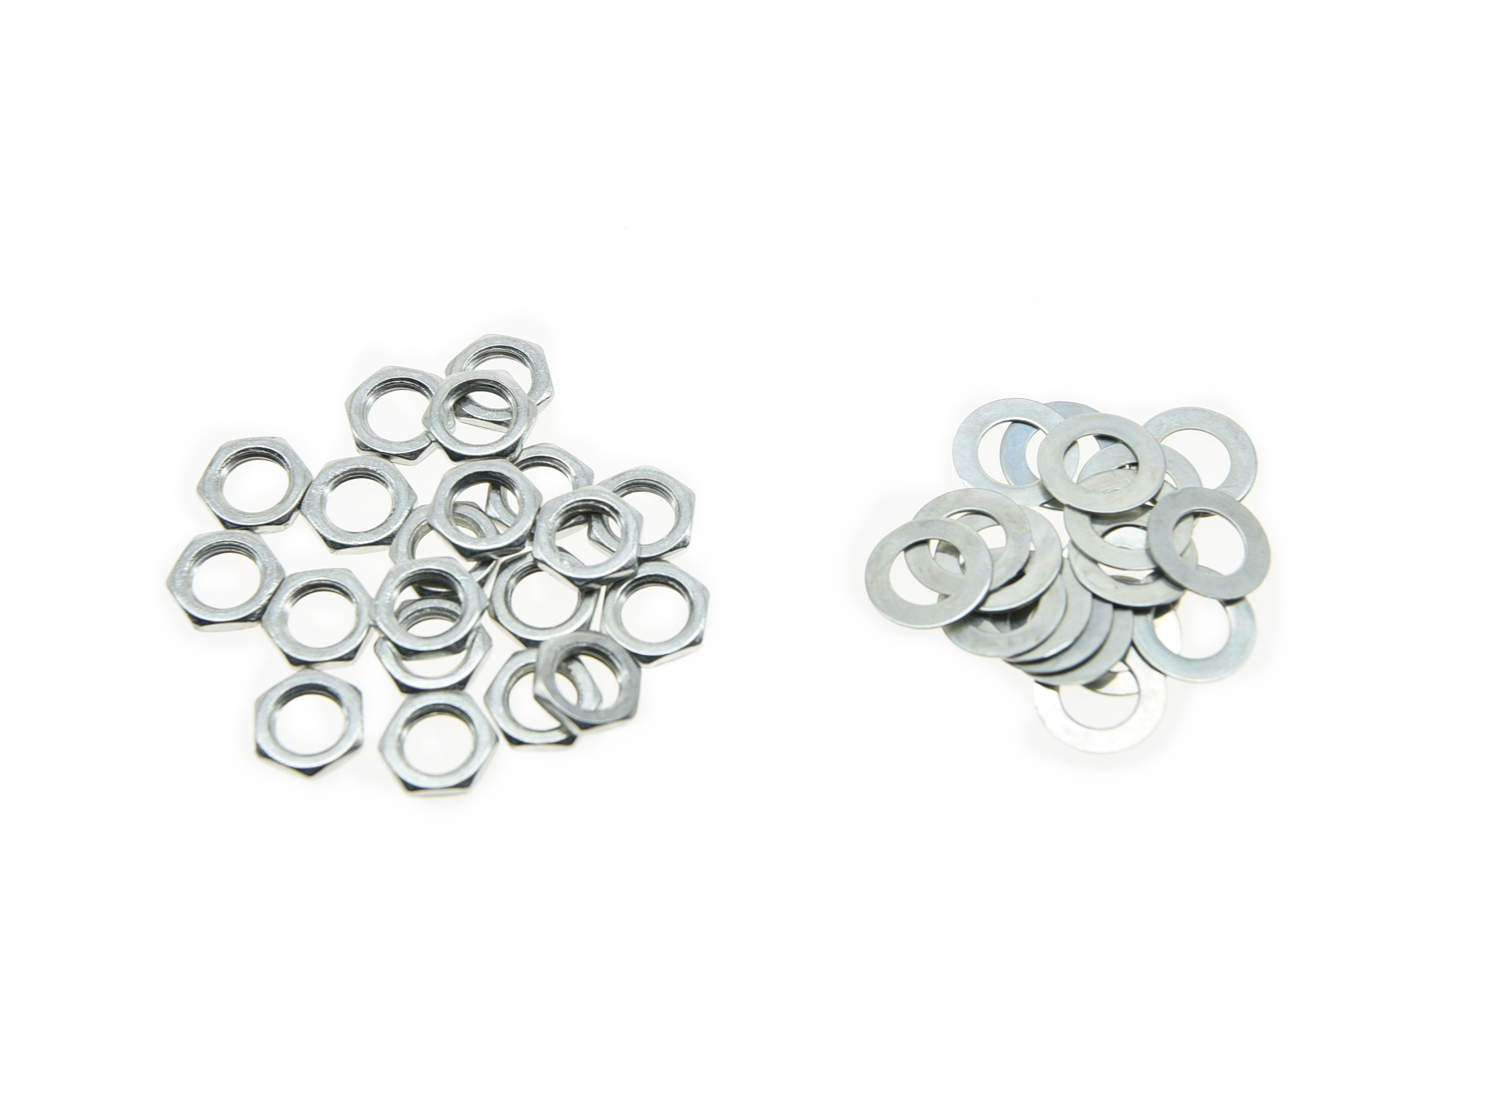 KAISH Pack of 20 Zinc Metric M7 Guitar Pots Nuts & Washers for 16mm Mini Metric Pots